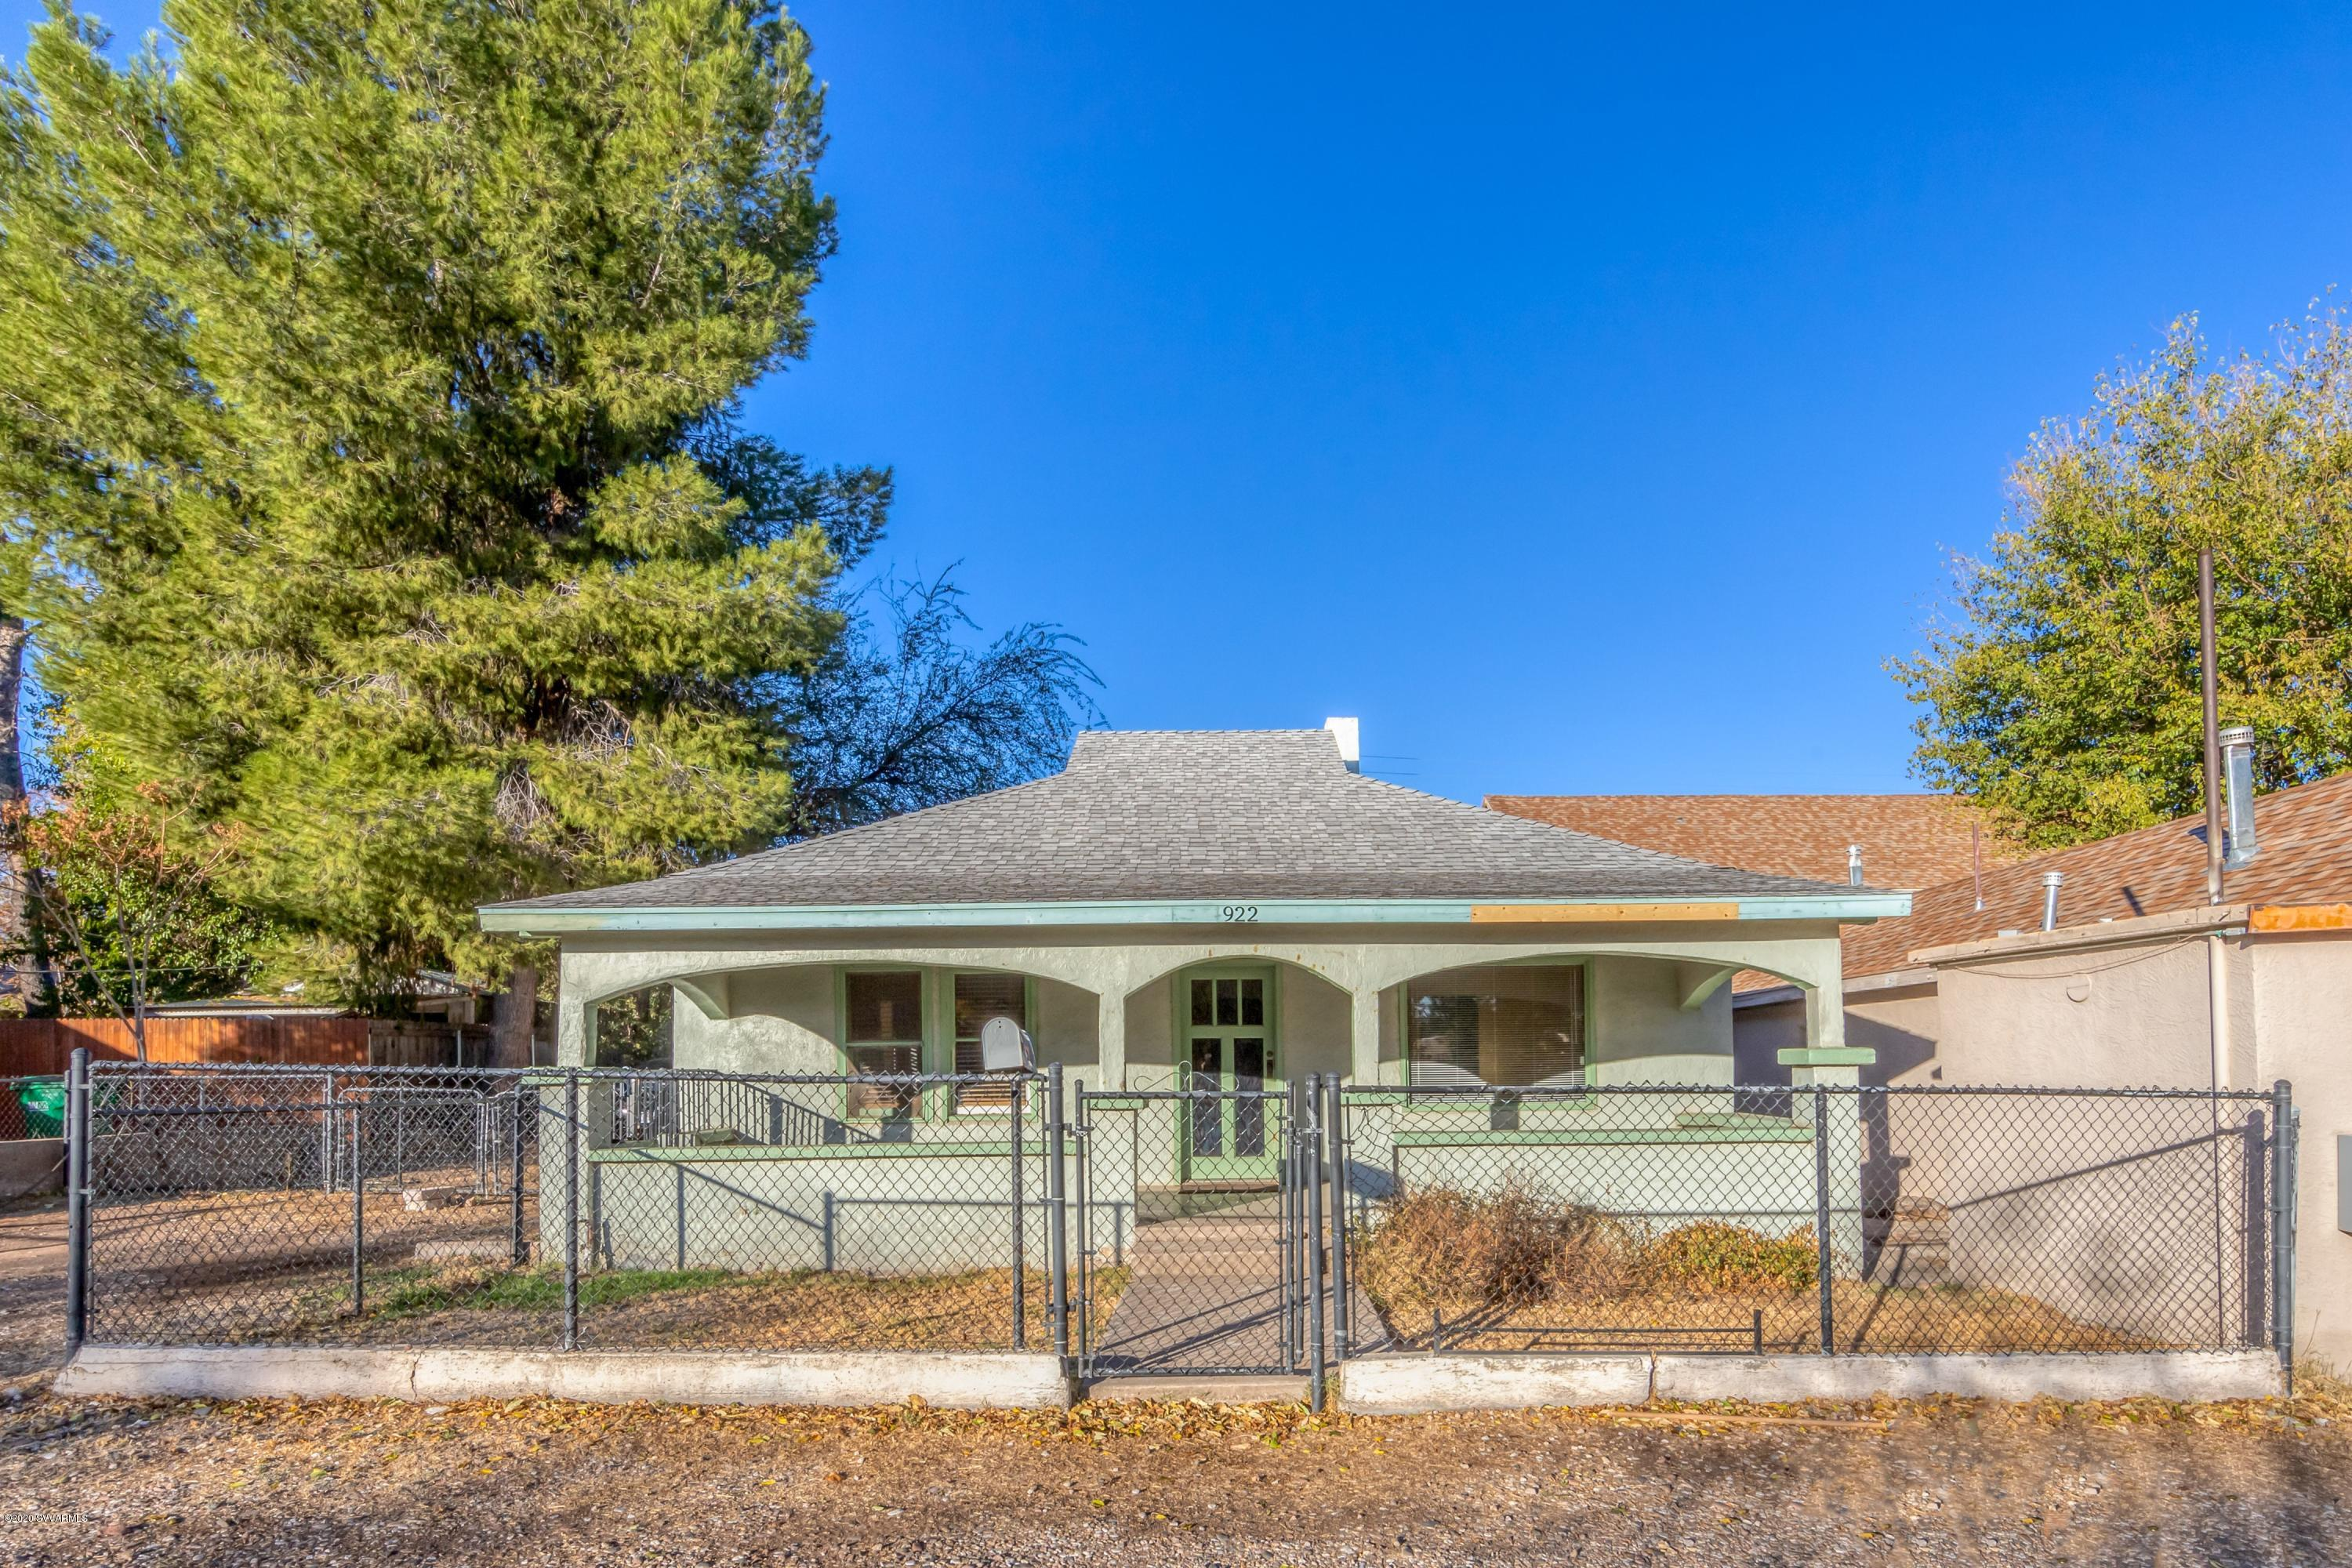 922 N 2nd St Cottonwood, AZ 86326